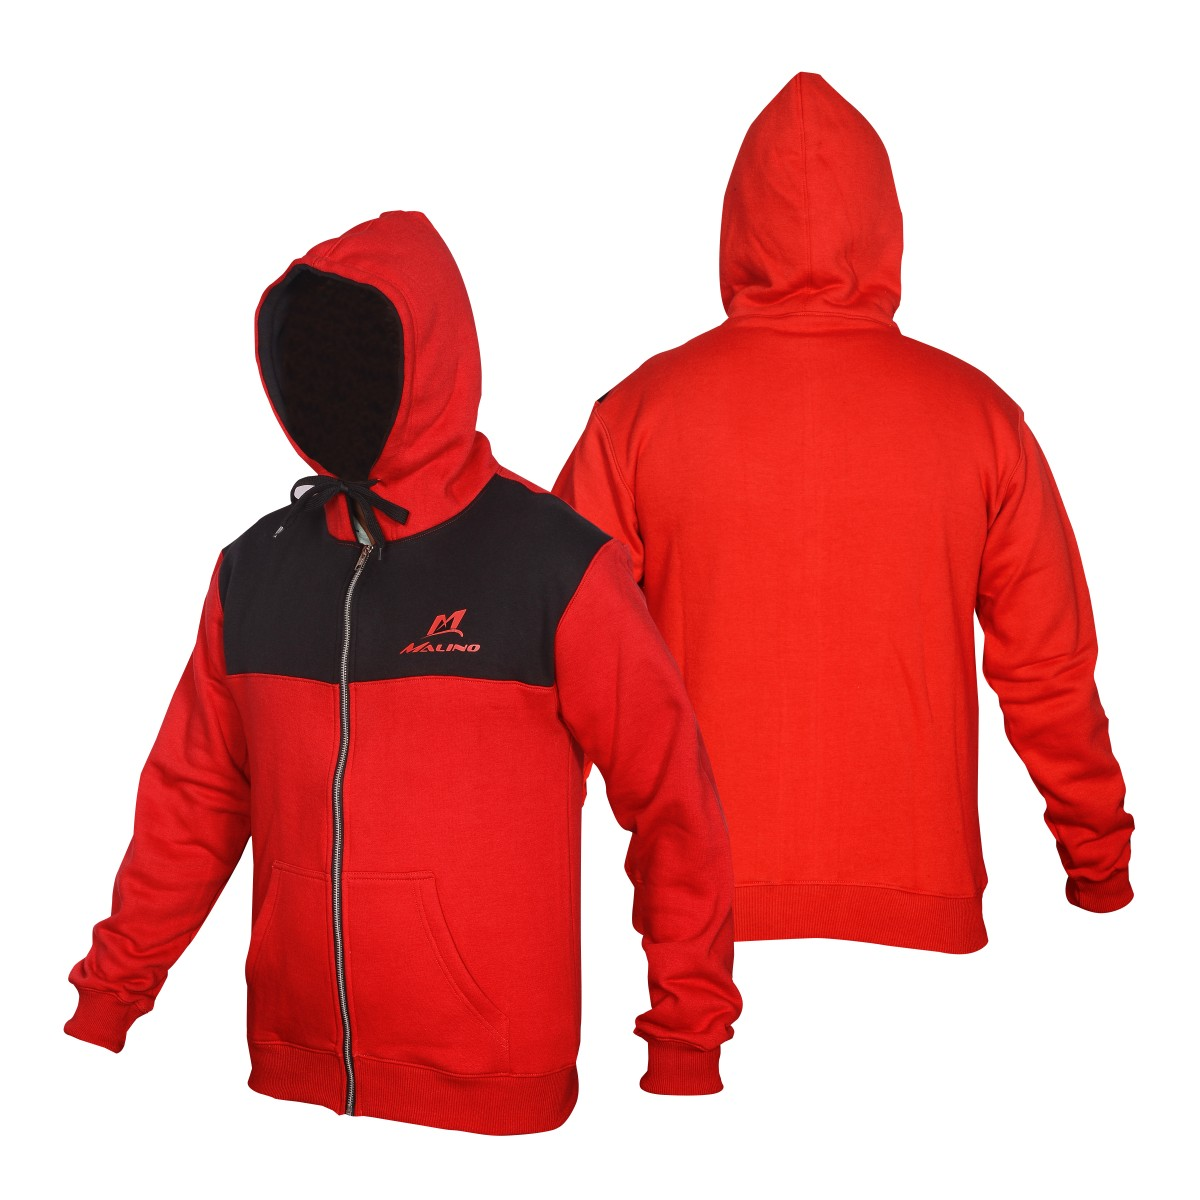 Malino Athletic Zip Up Hoodie Red Black